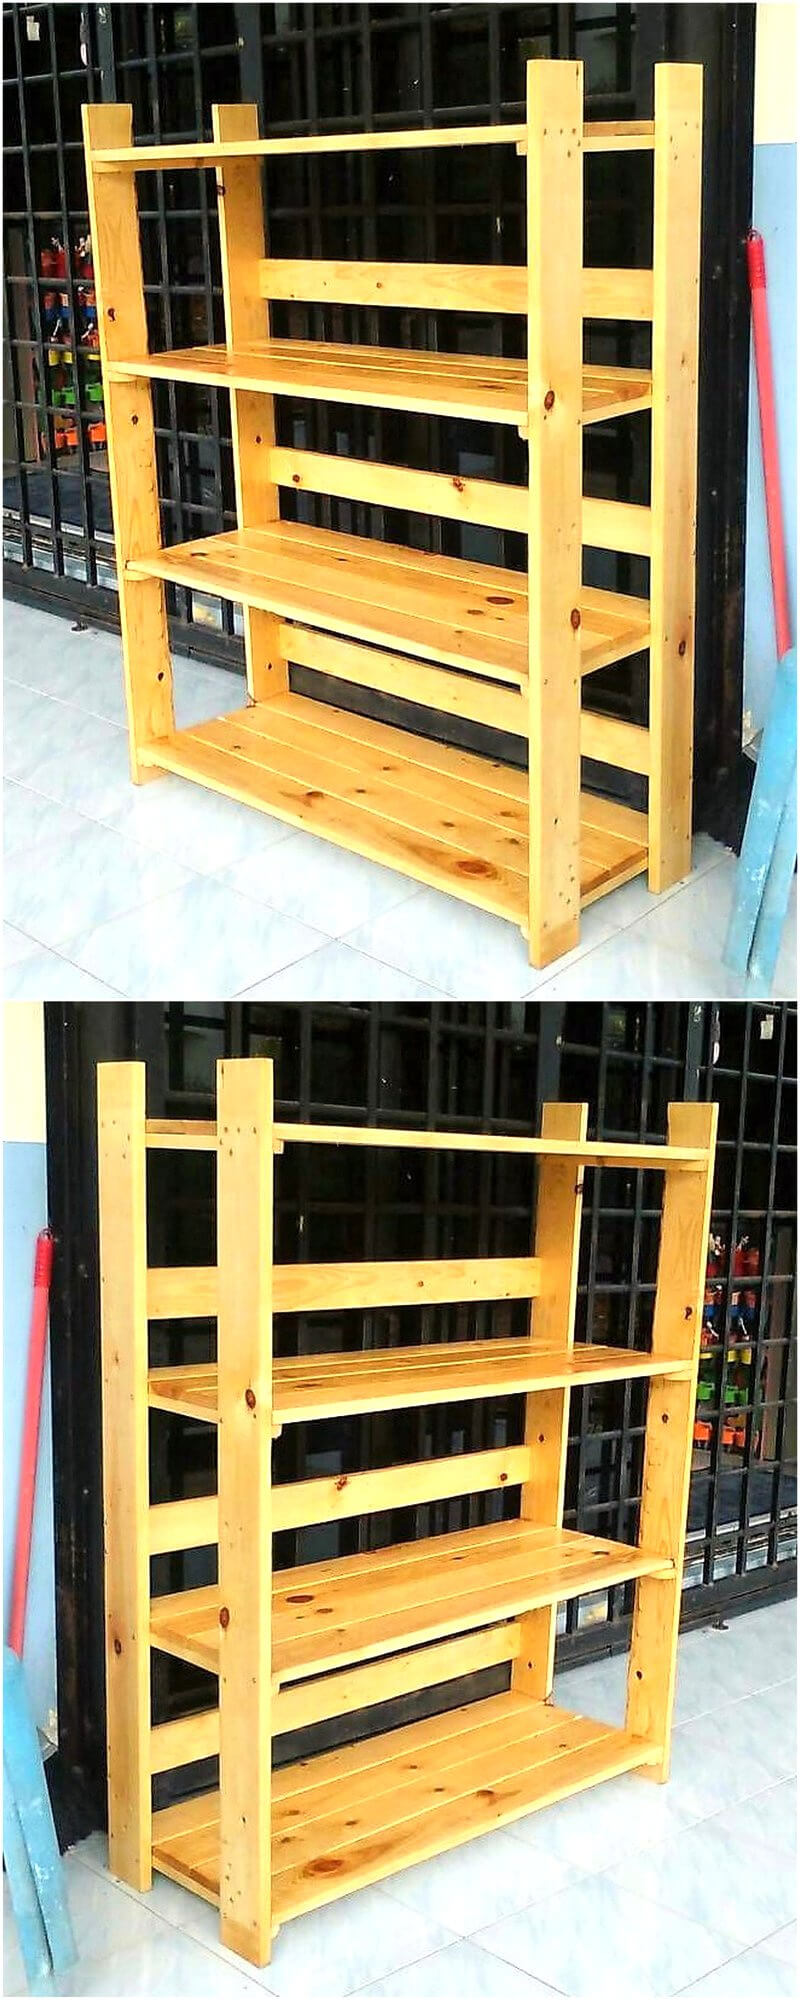 wood pallet shelving rack